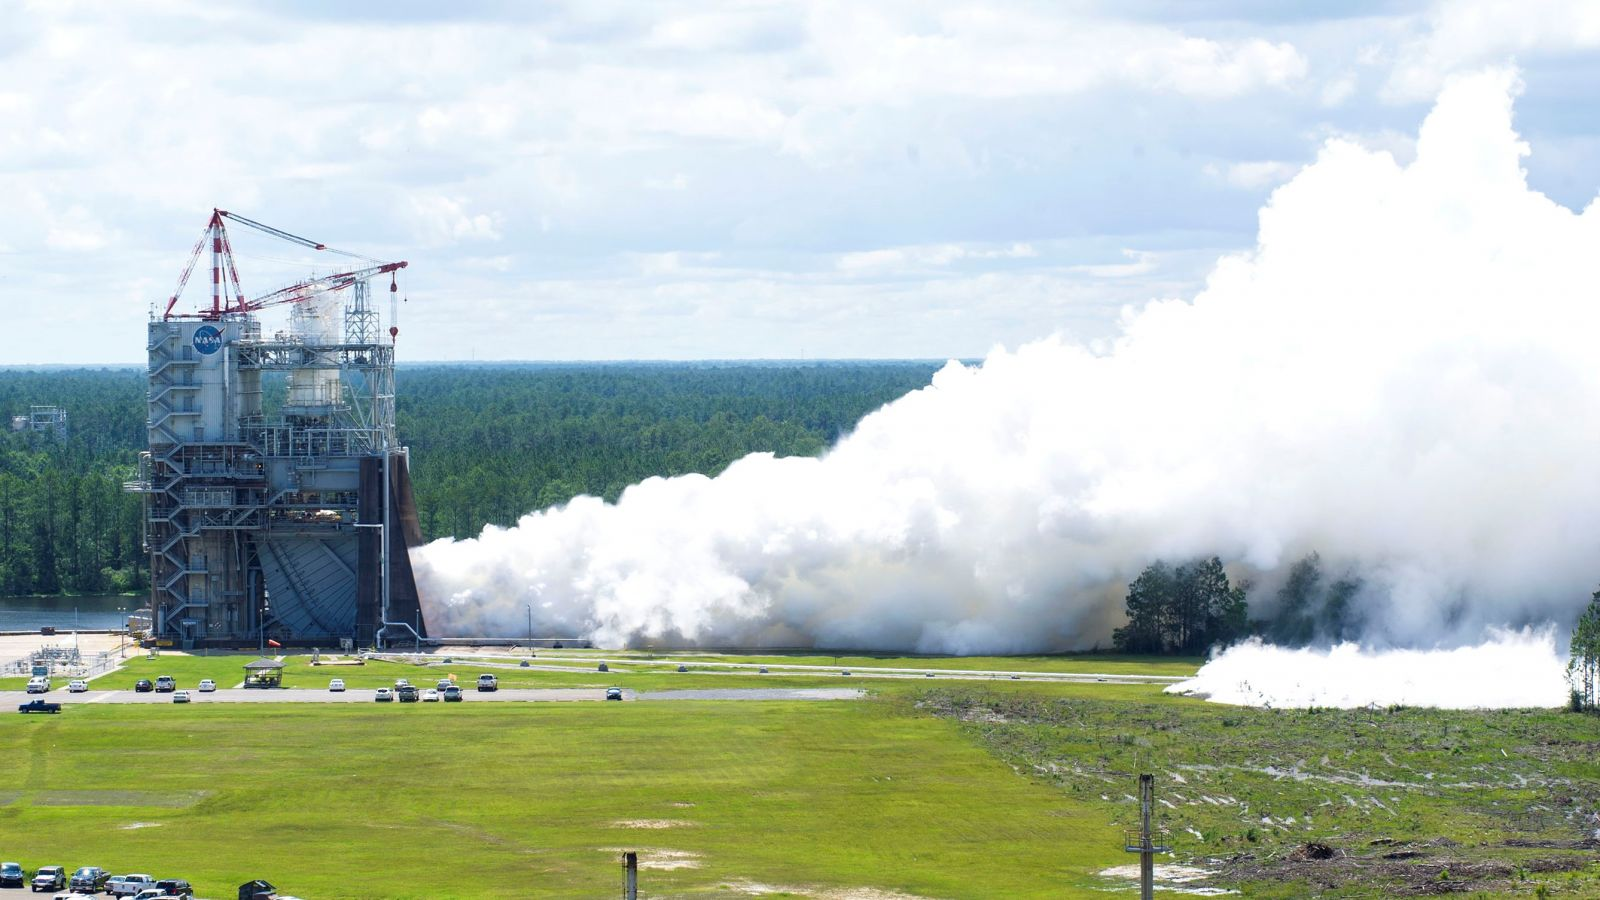 A full duration RS-25 engine test at NASA's Stennis Space Center. The test took place May 23, 2017. Photo Credit: NASA